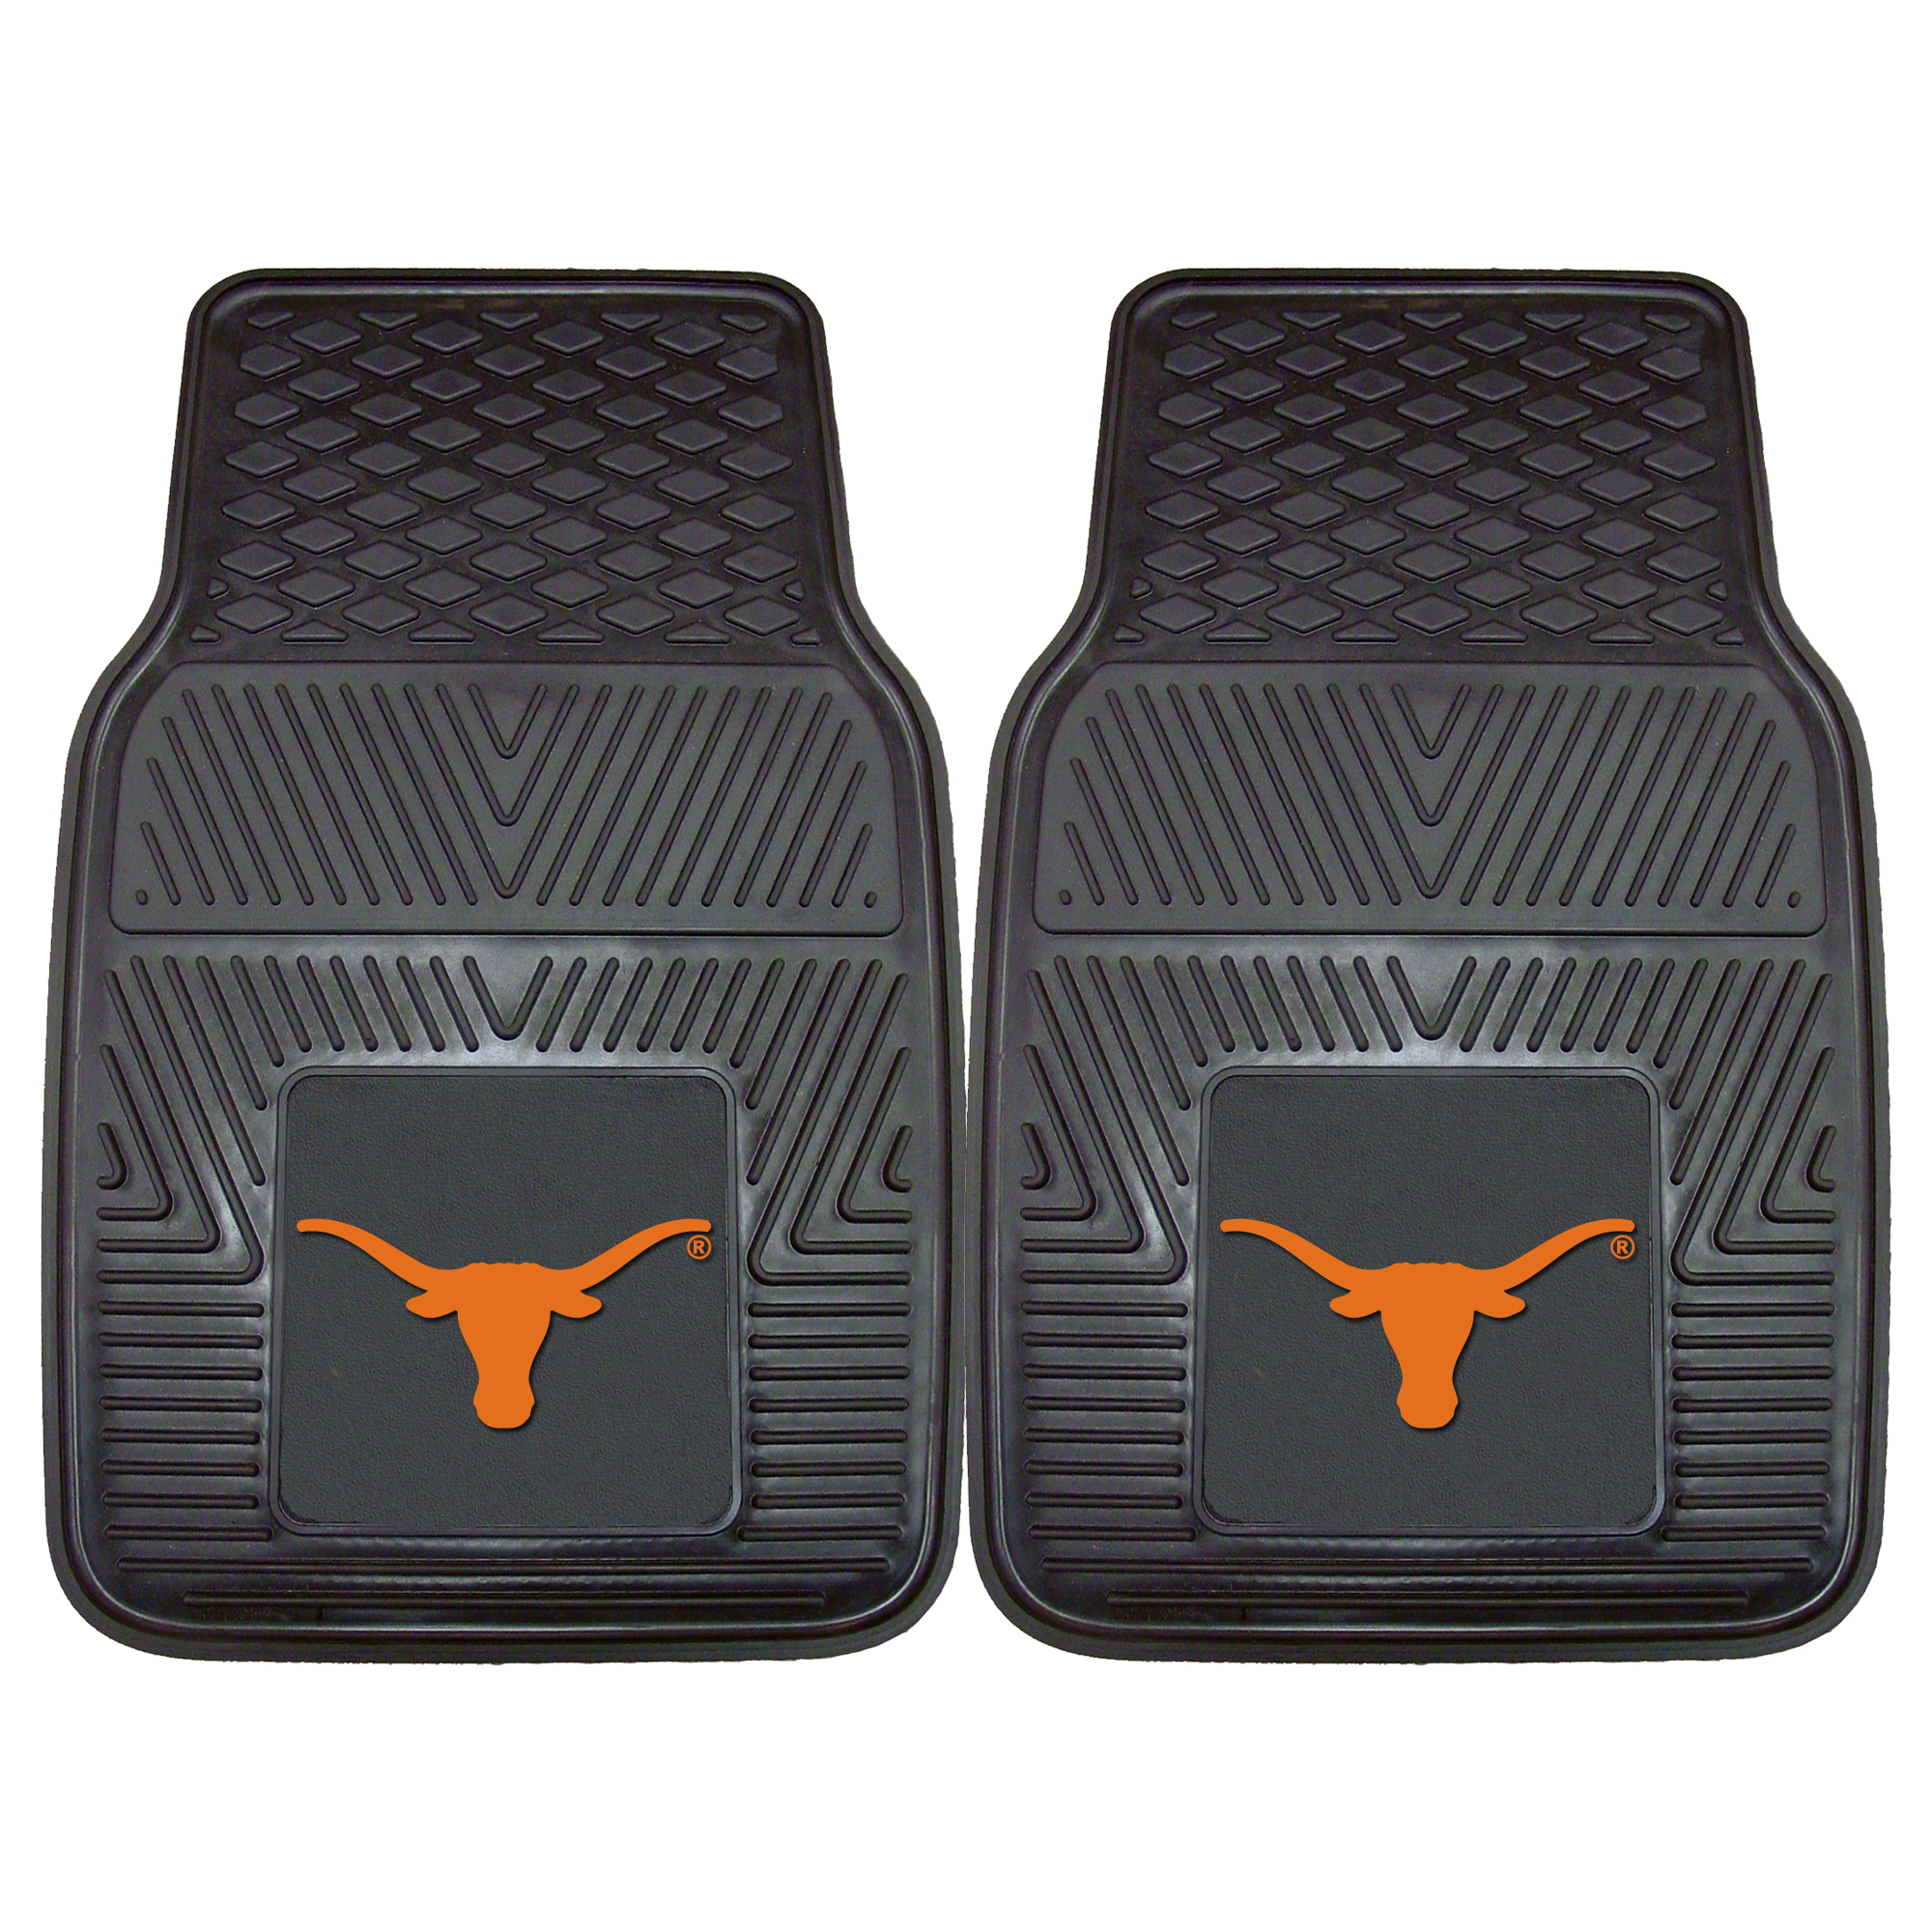 2 piece set of heavy-duty vinyl car mats with Texas Longhorns NCAA College Team Logo.